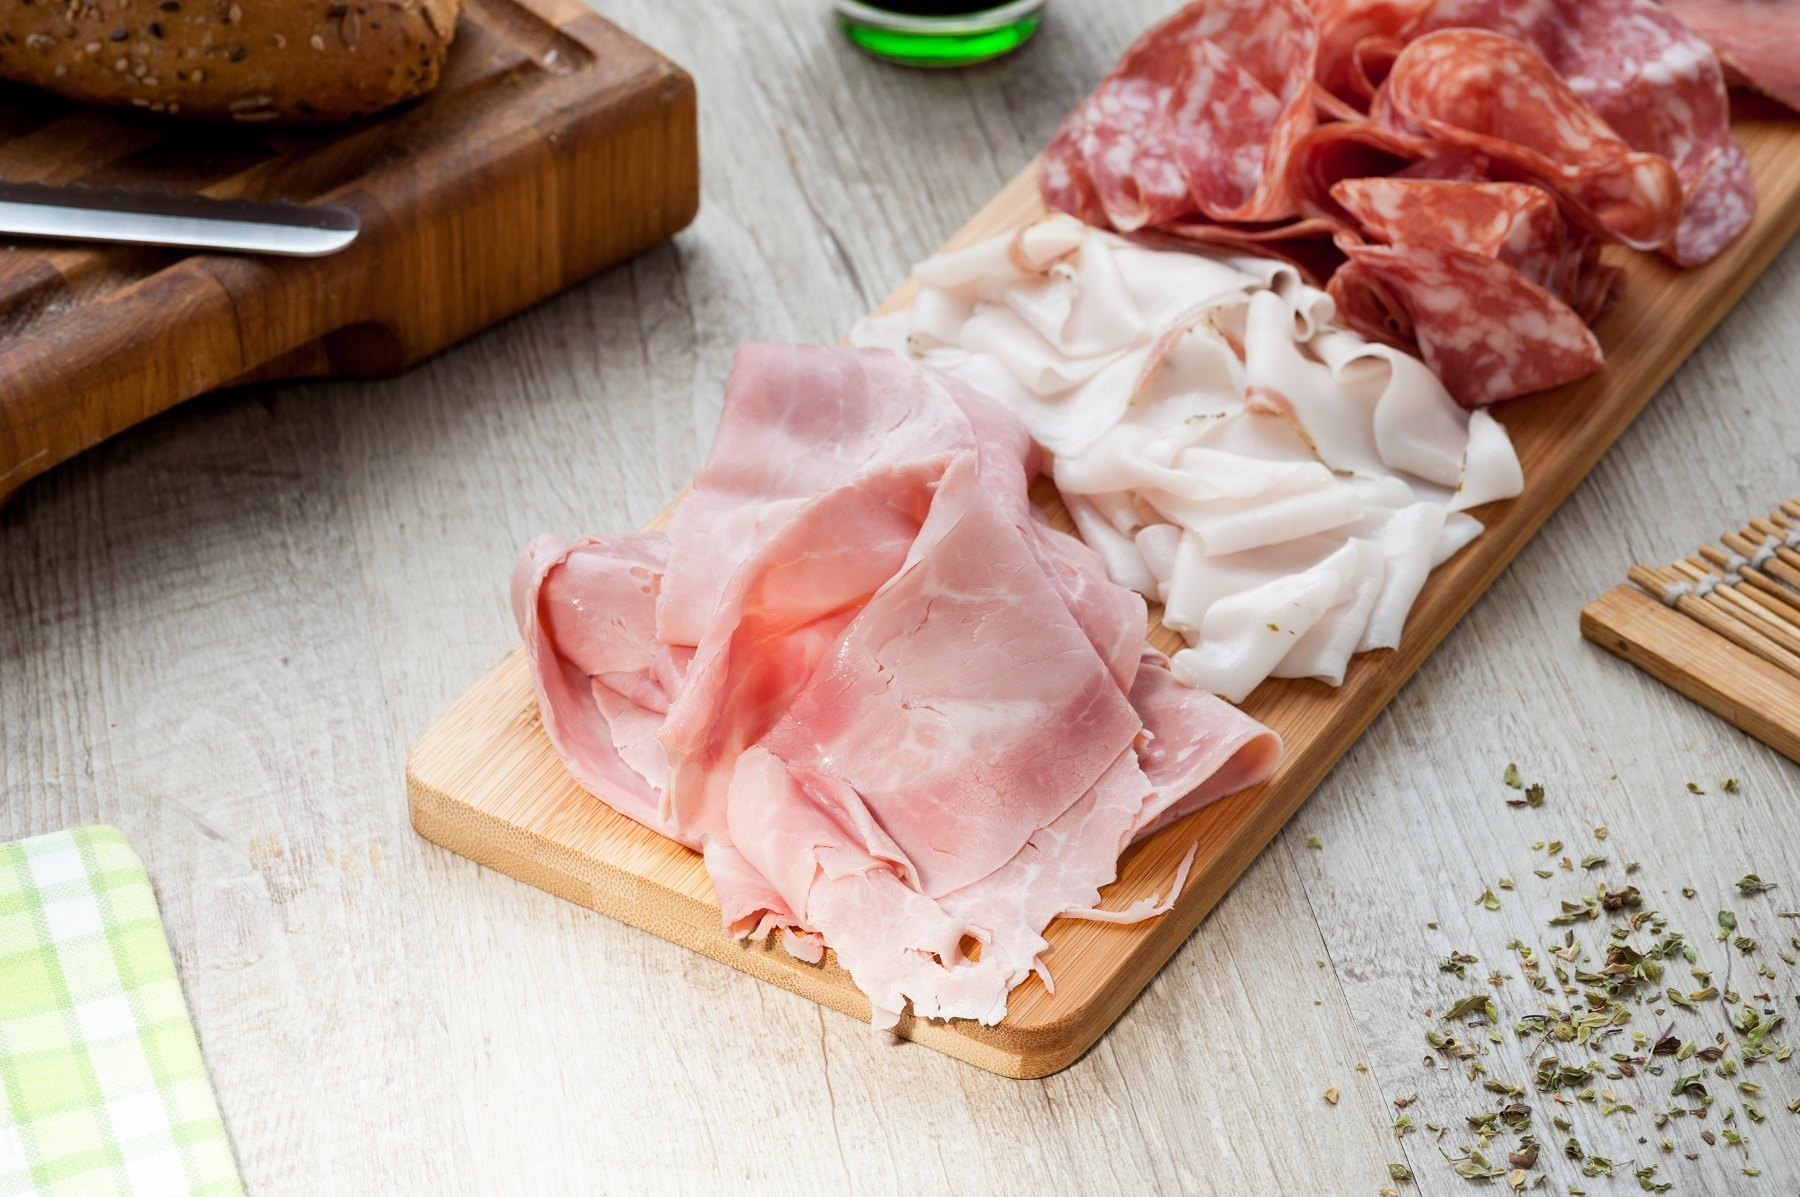 The dangers you need to know about cold cuts